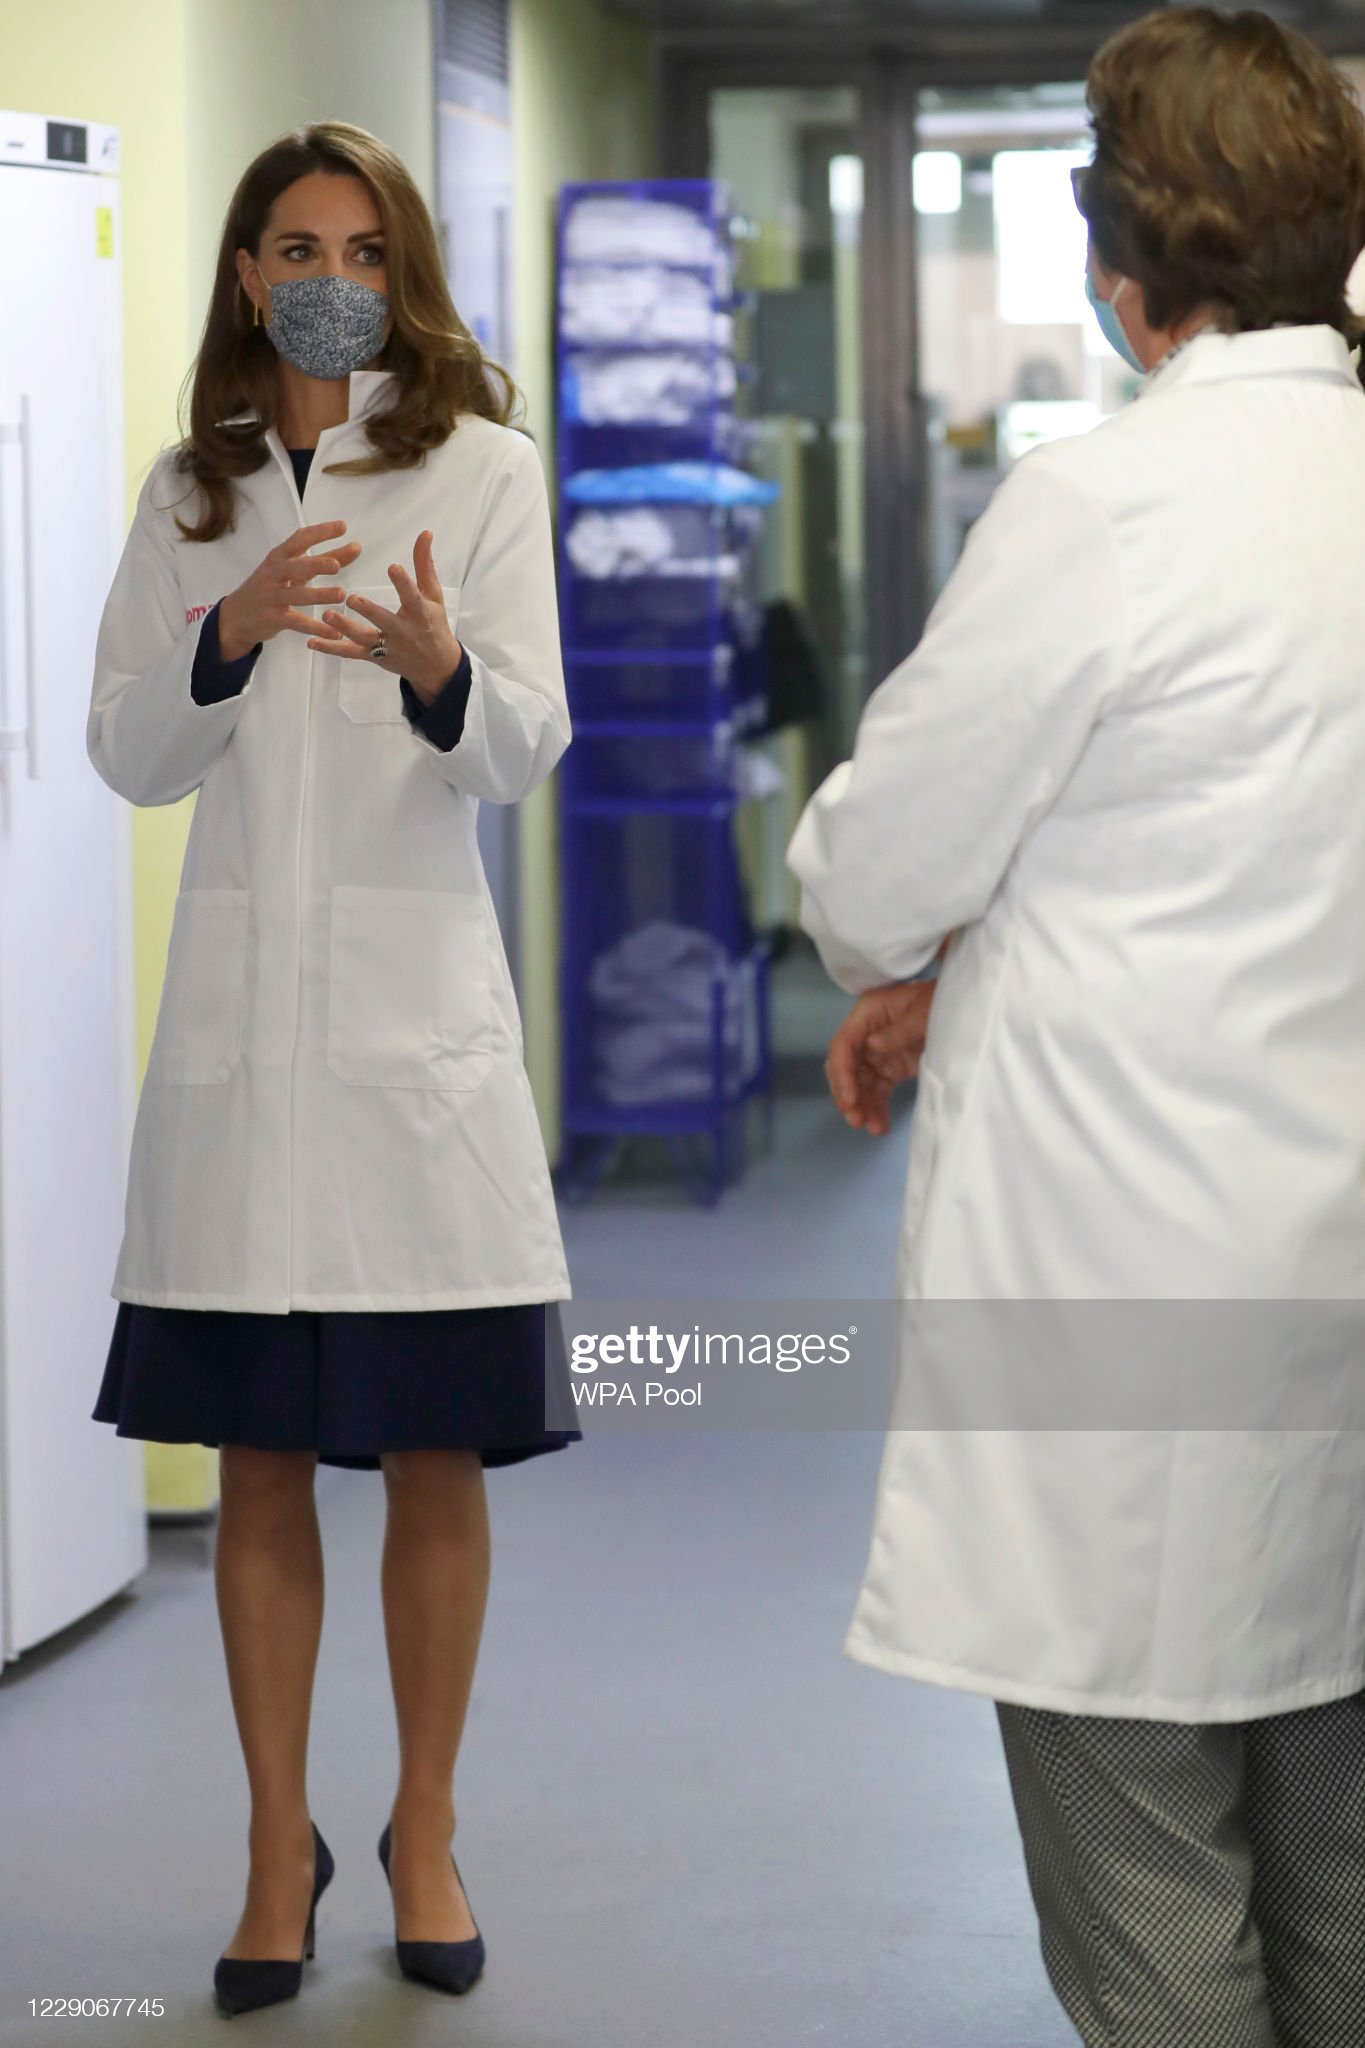 catherine-duchess-of-cambridge-tours-a-laboratory-during-a-visit-to-picture-id1229067745